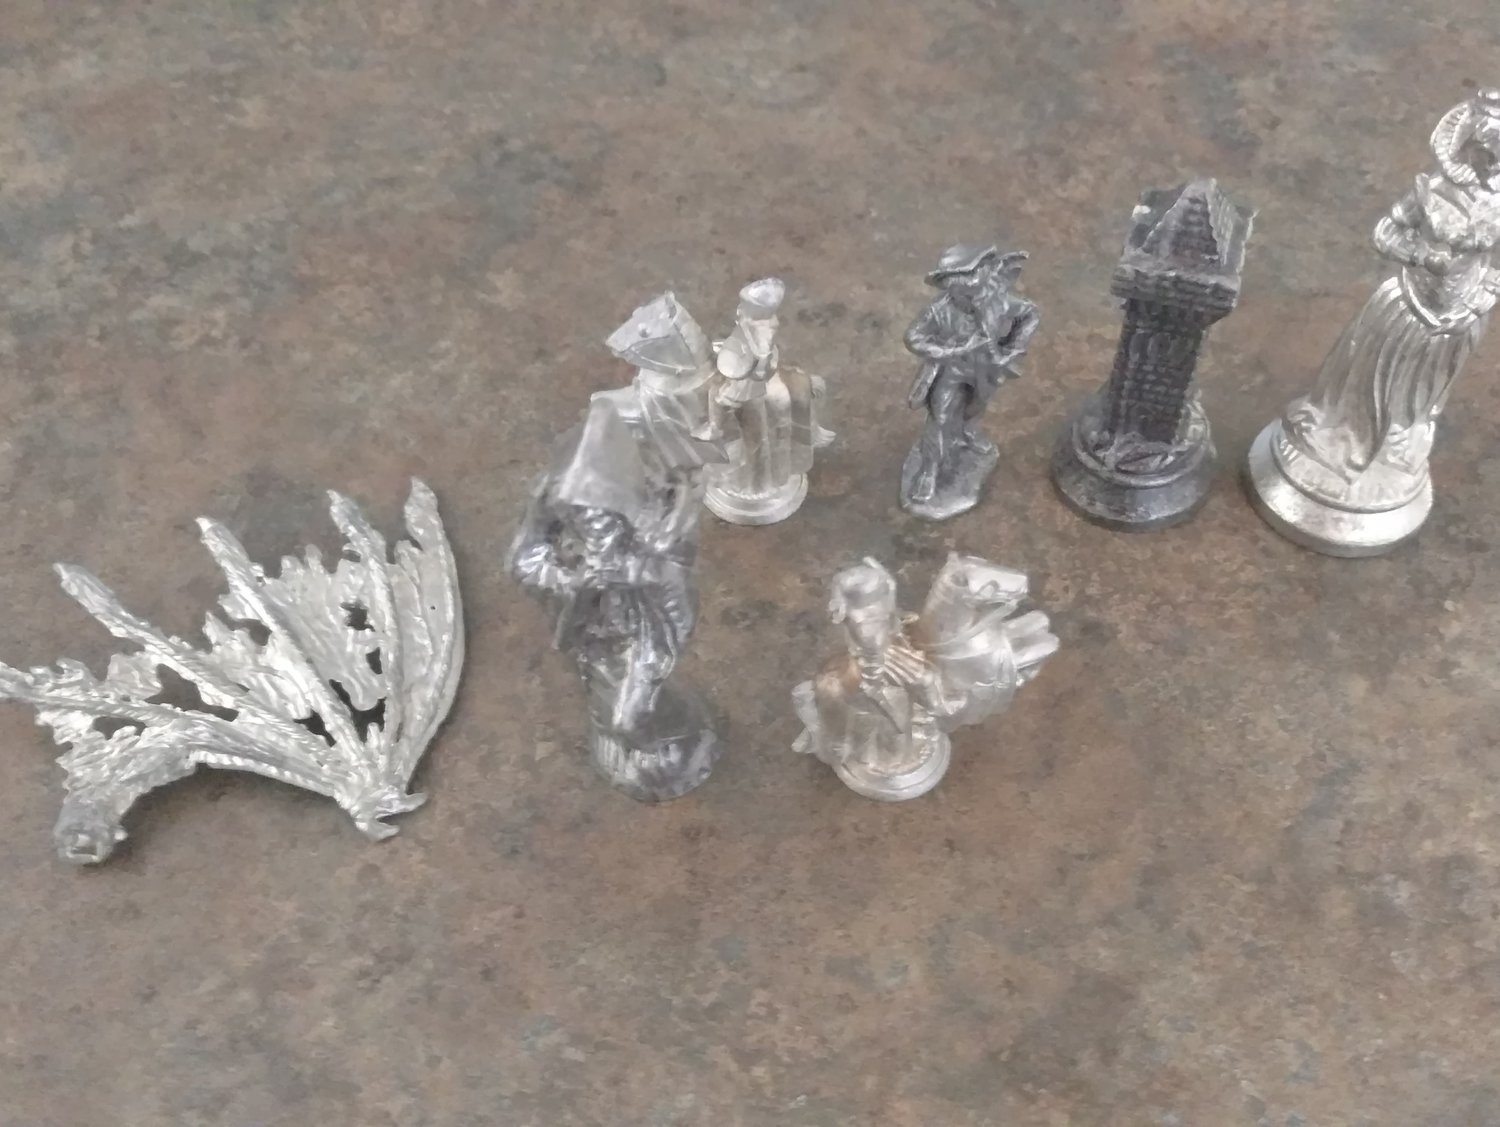 New Things to Come for RBD: Casting in Pewter? — Rhiannon